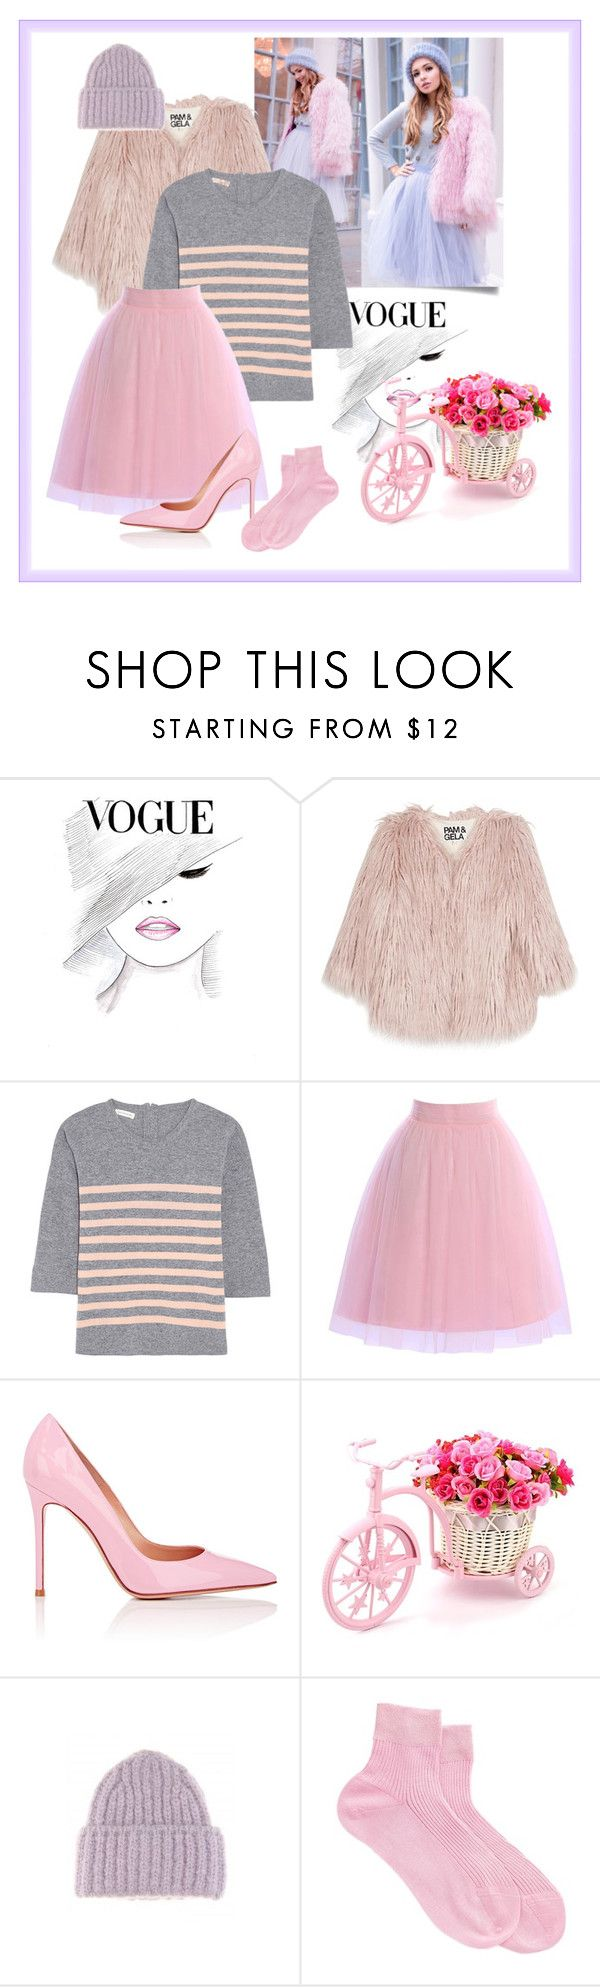 """""""Who is there?"""" by teddy-oconner ❤ liked on Polyvore featuring Pam & Gela, Chinti and Parker, Gianvito Rossi, Acne Studios and Maria La Rosa"""